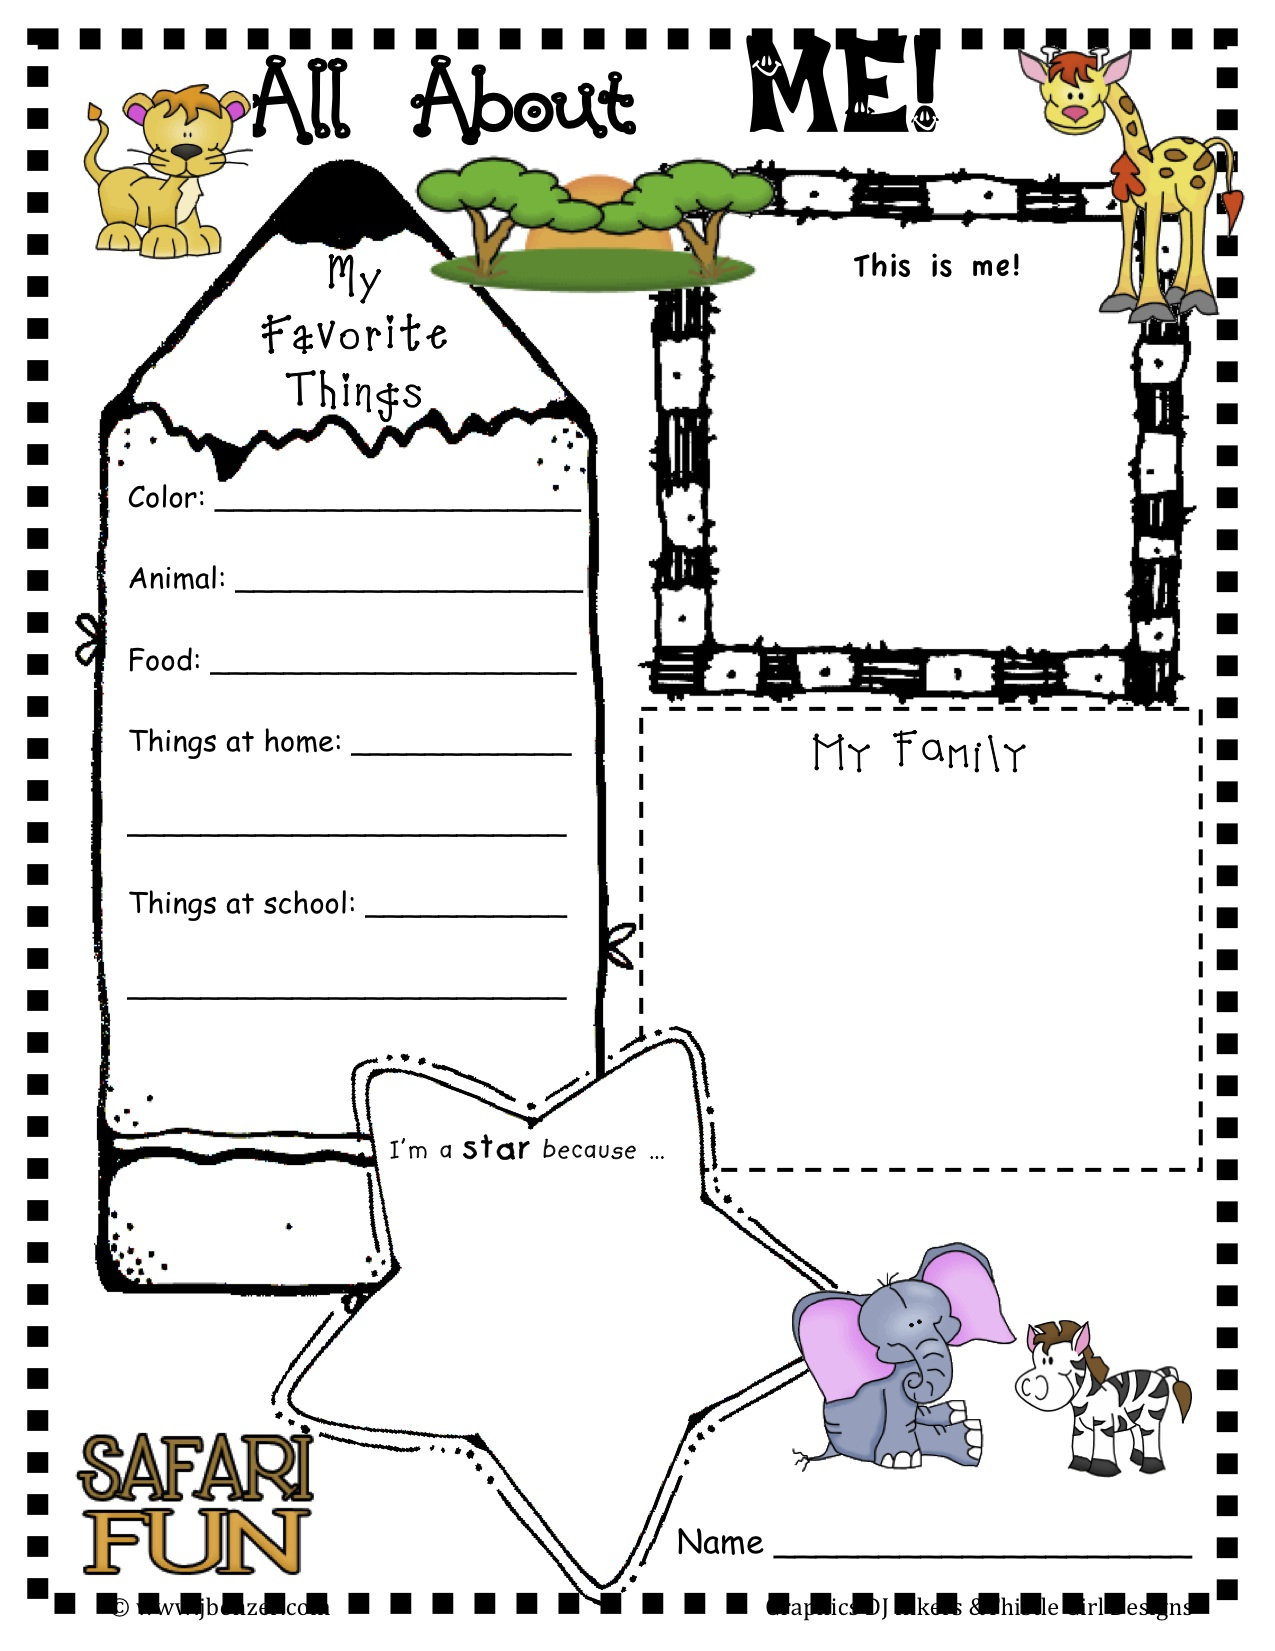 Loads Of Free Printables Insane Amounts Seriously Homeschool Ideas Pinterest Clroom Themes Fun And Student The Week